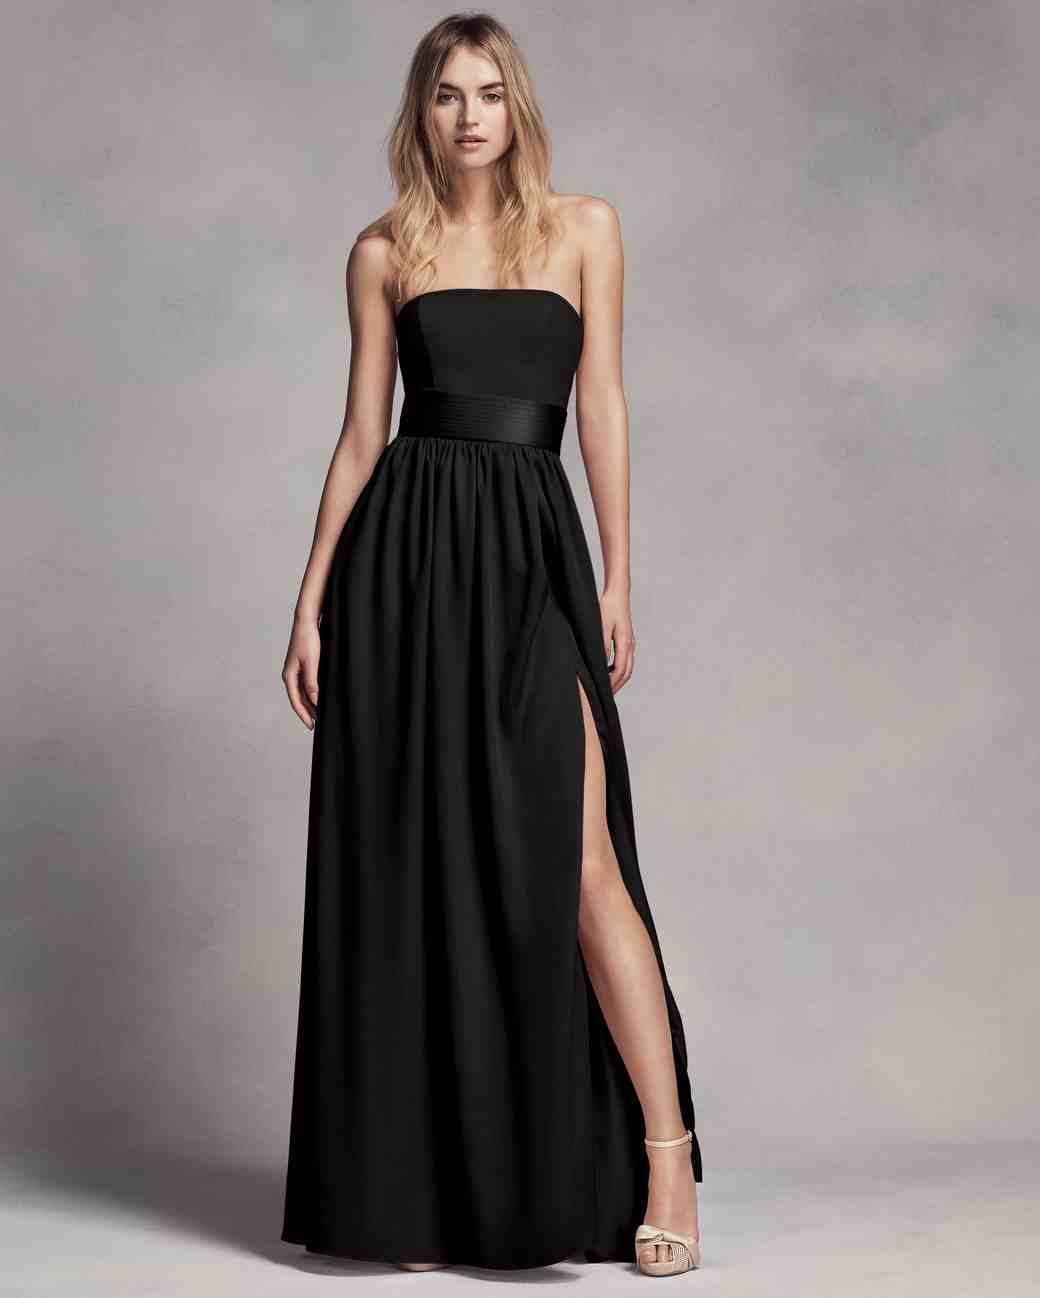 Chic Black Bridesmaid Dresses | Martha Stewart Weddings